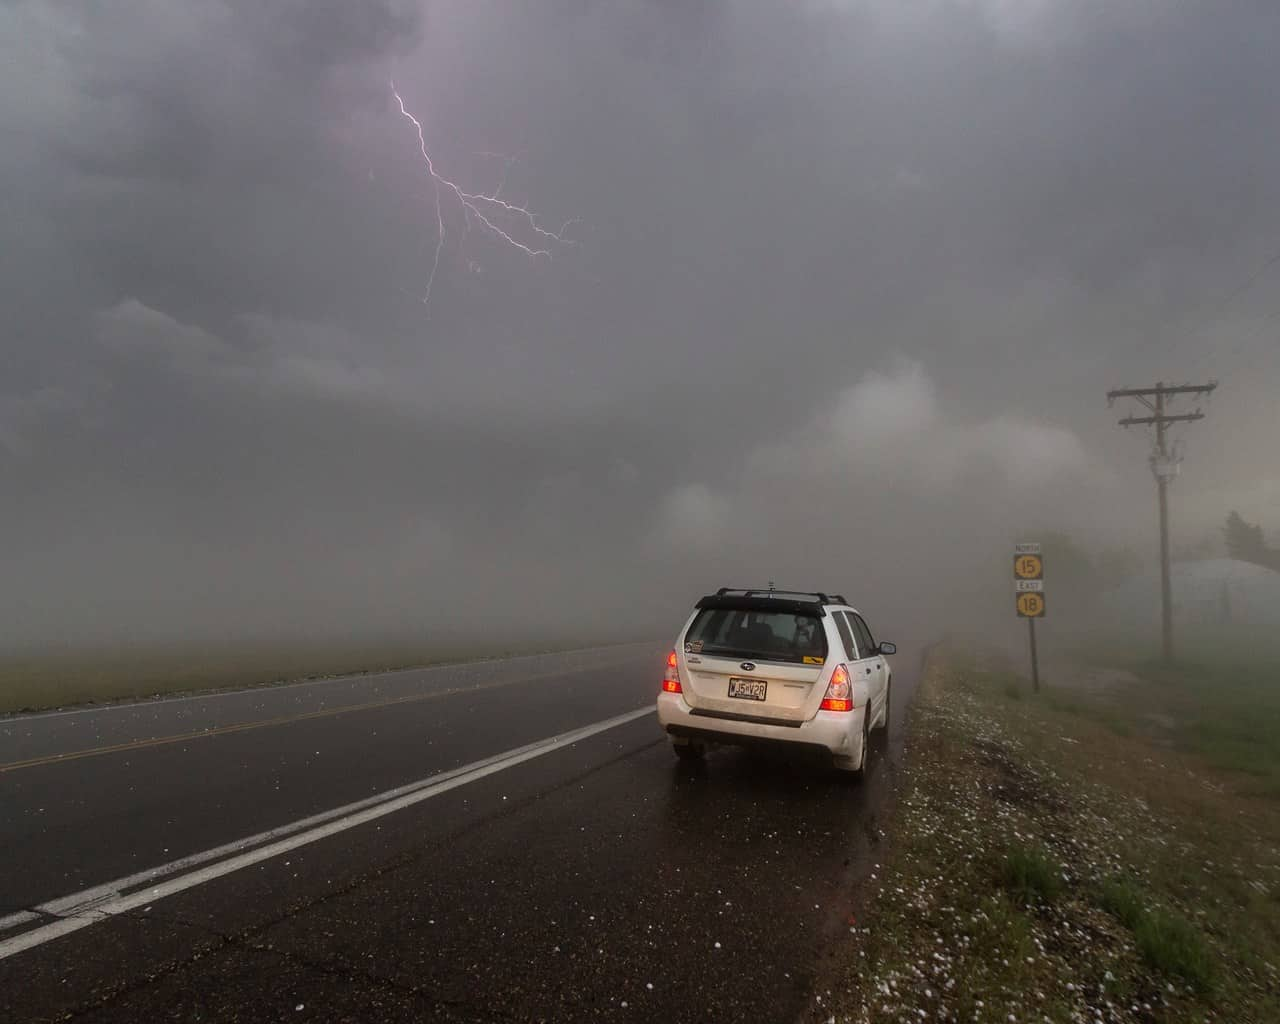 Snapped a quick picture of the hail fog back on the 24th of April, and a little bit of lightning managed to sneak into the shot.